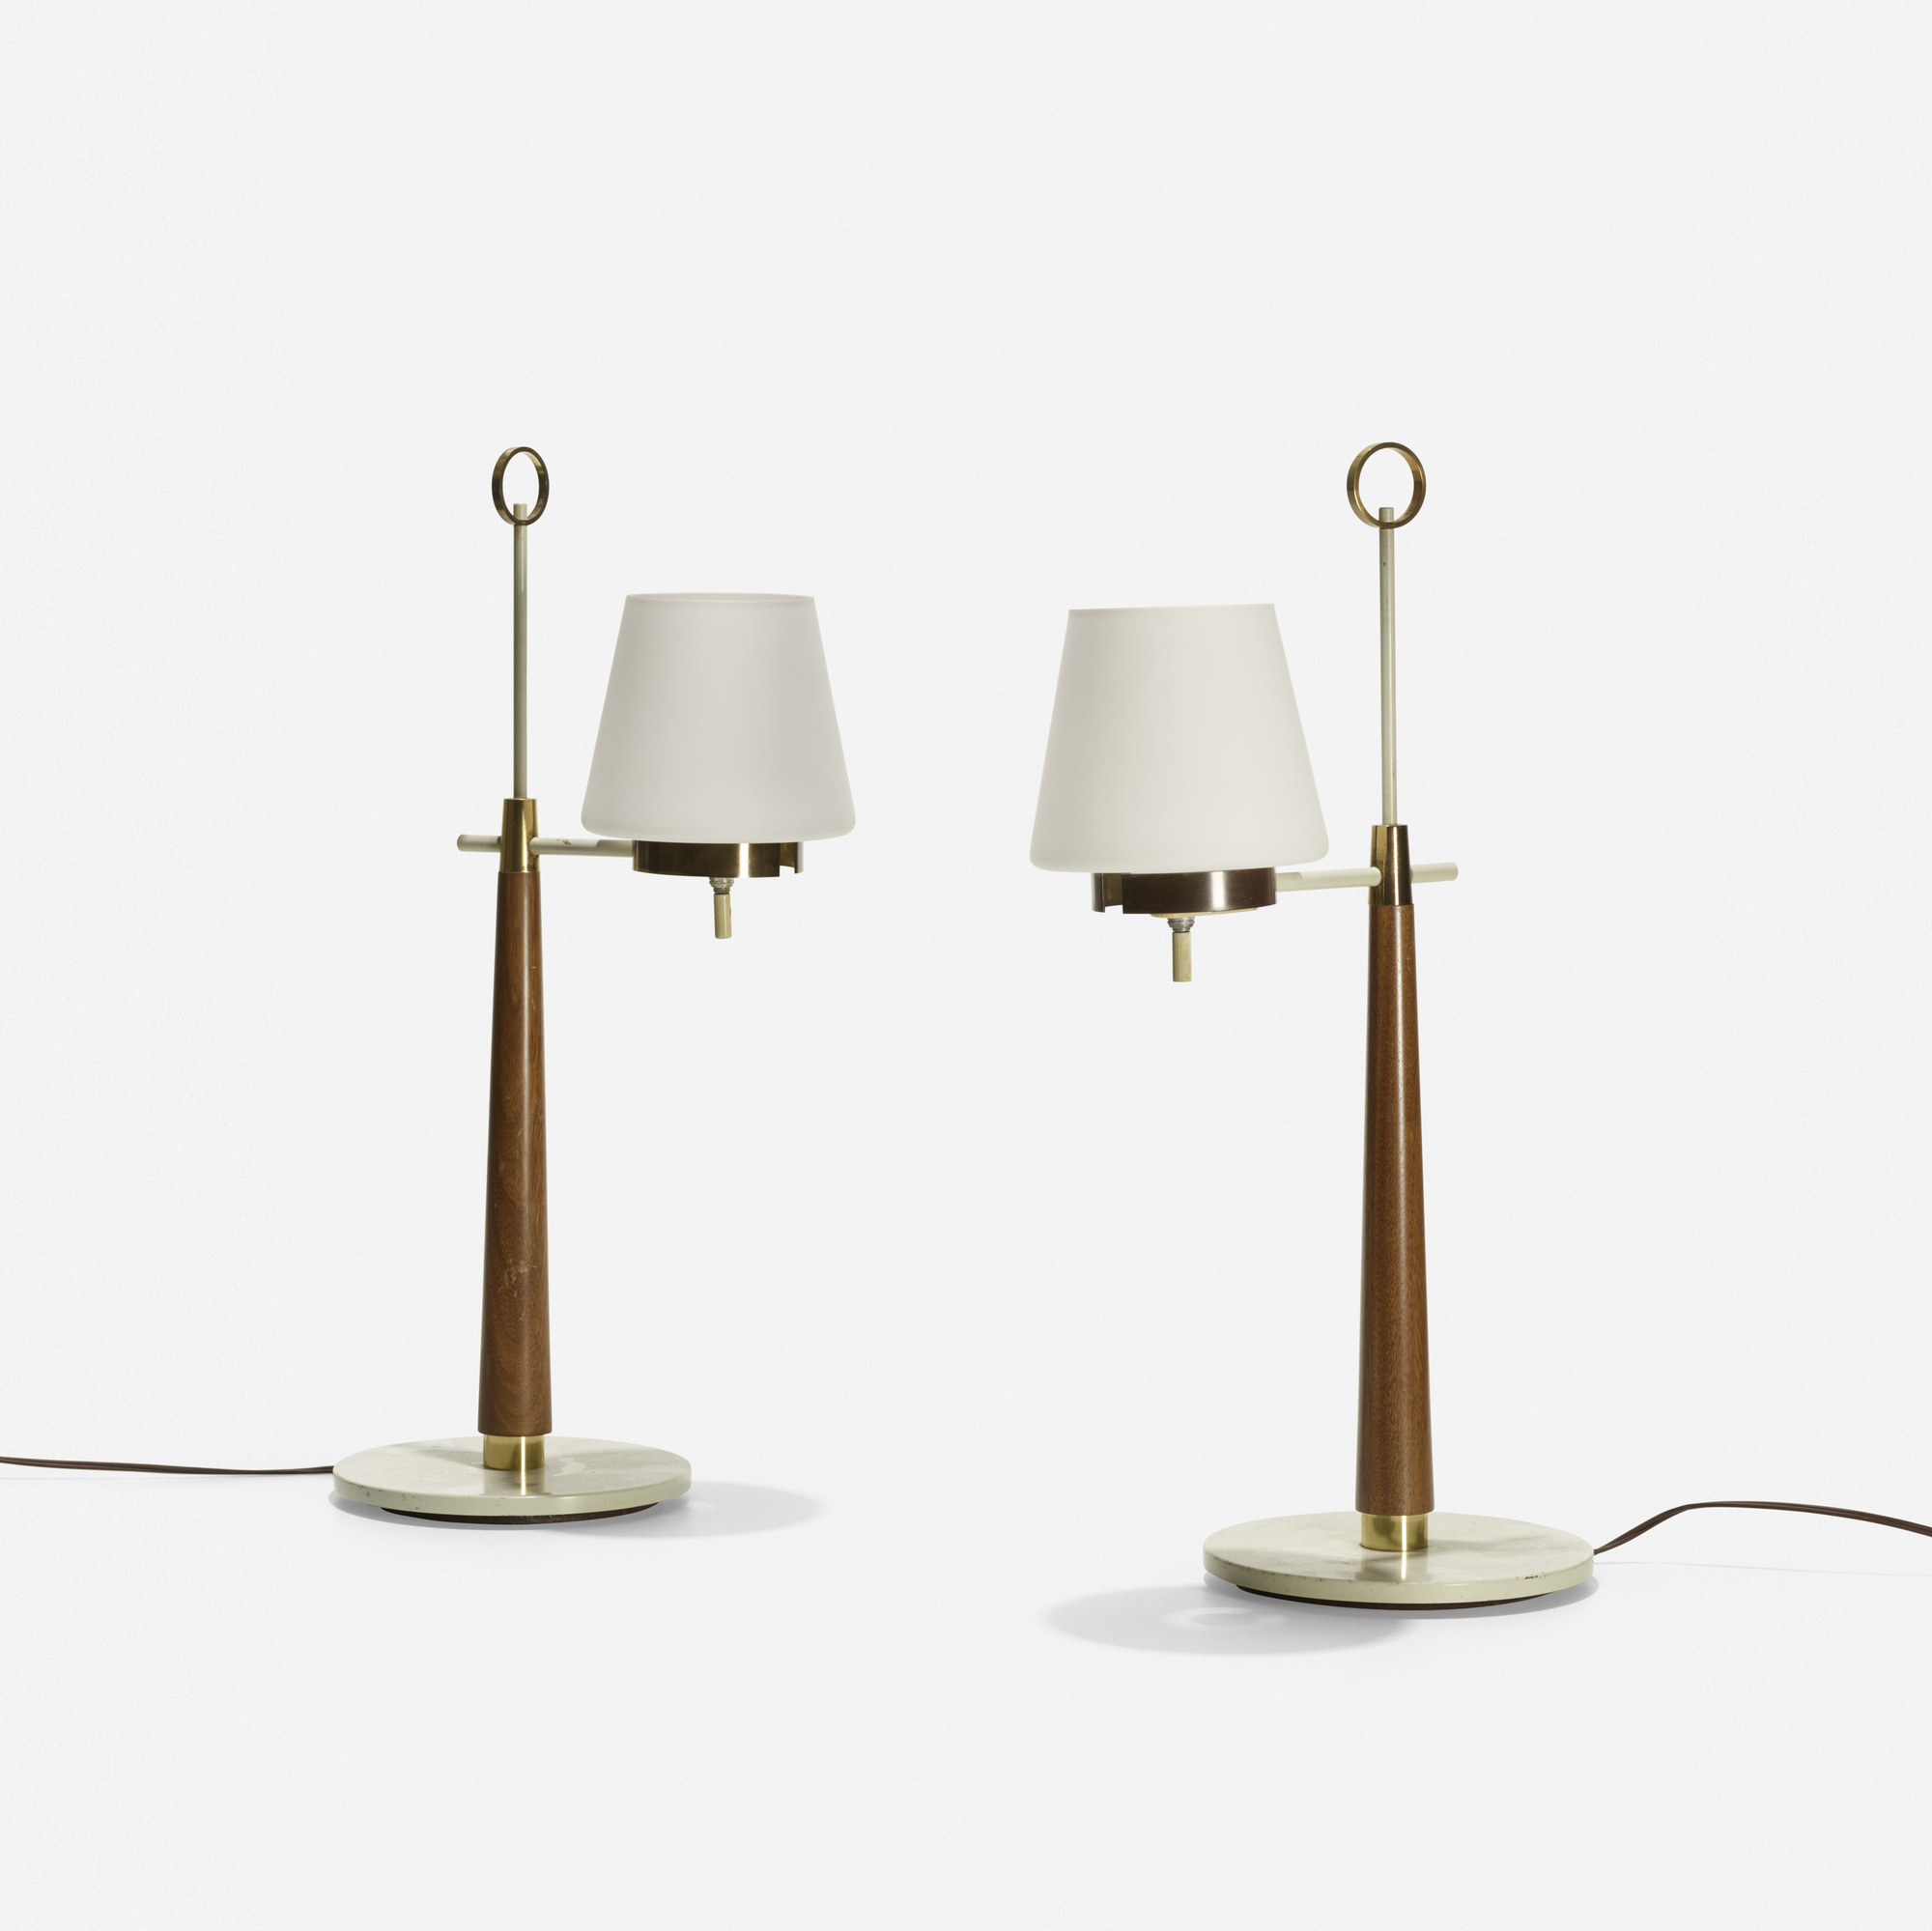 190 gerald thurston table lamps pair american design 15 190 gerald thurston table lamps pair 1 of 1 geotapseo Image collections